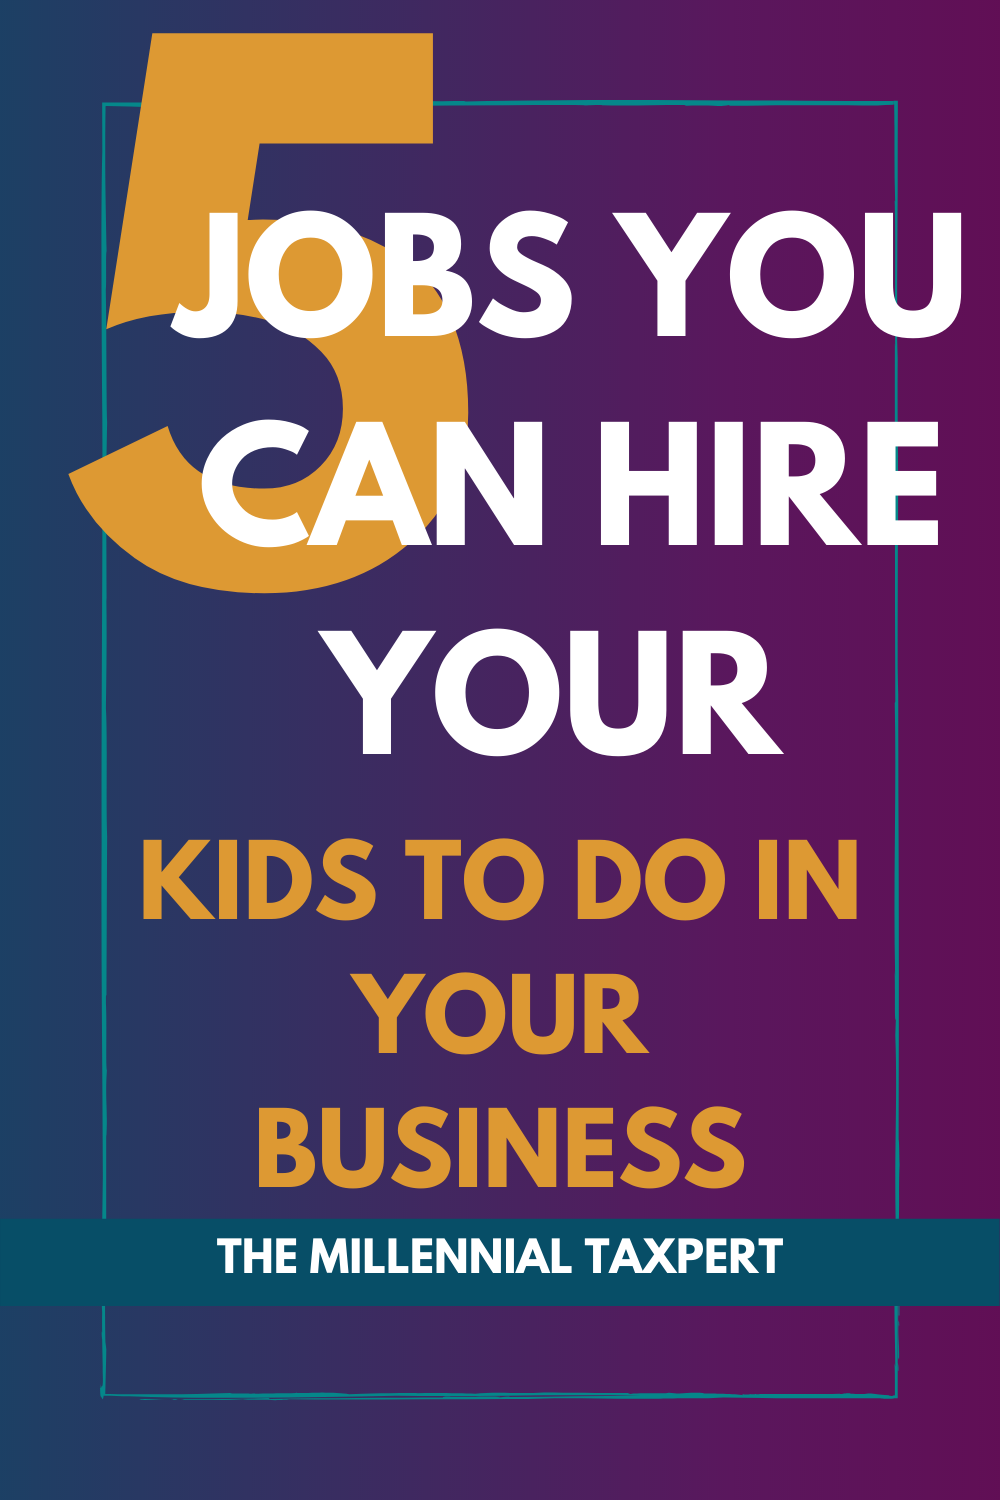 Pinterest image: 3 mistakes to avoid when hiring your children in your biz